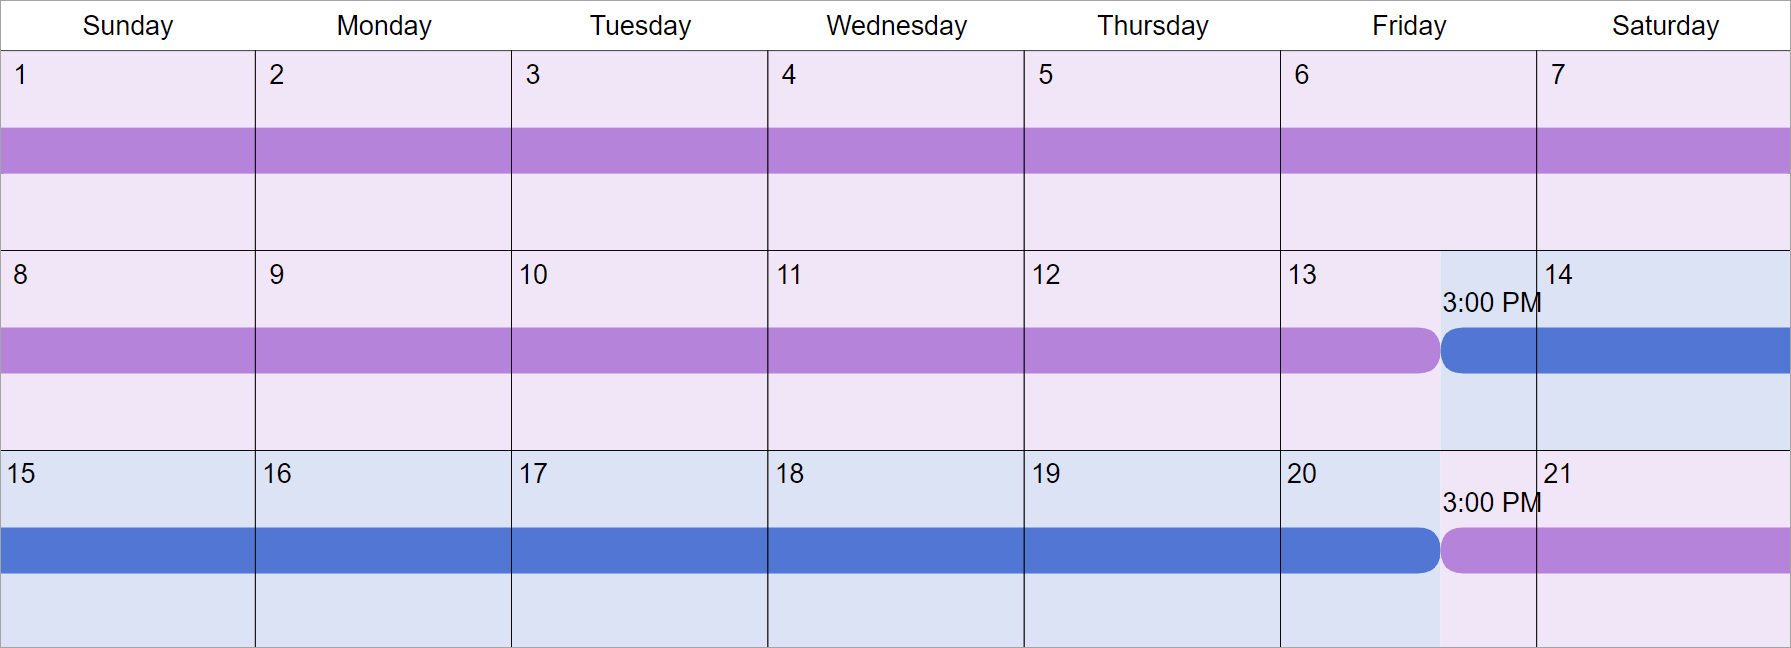 Every 3Rd Week Custody & Visitation Schedule Examples How To A Make A Two Week Schedule